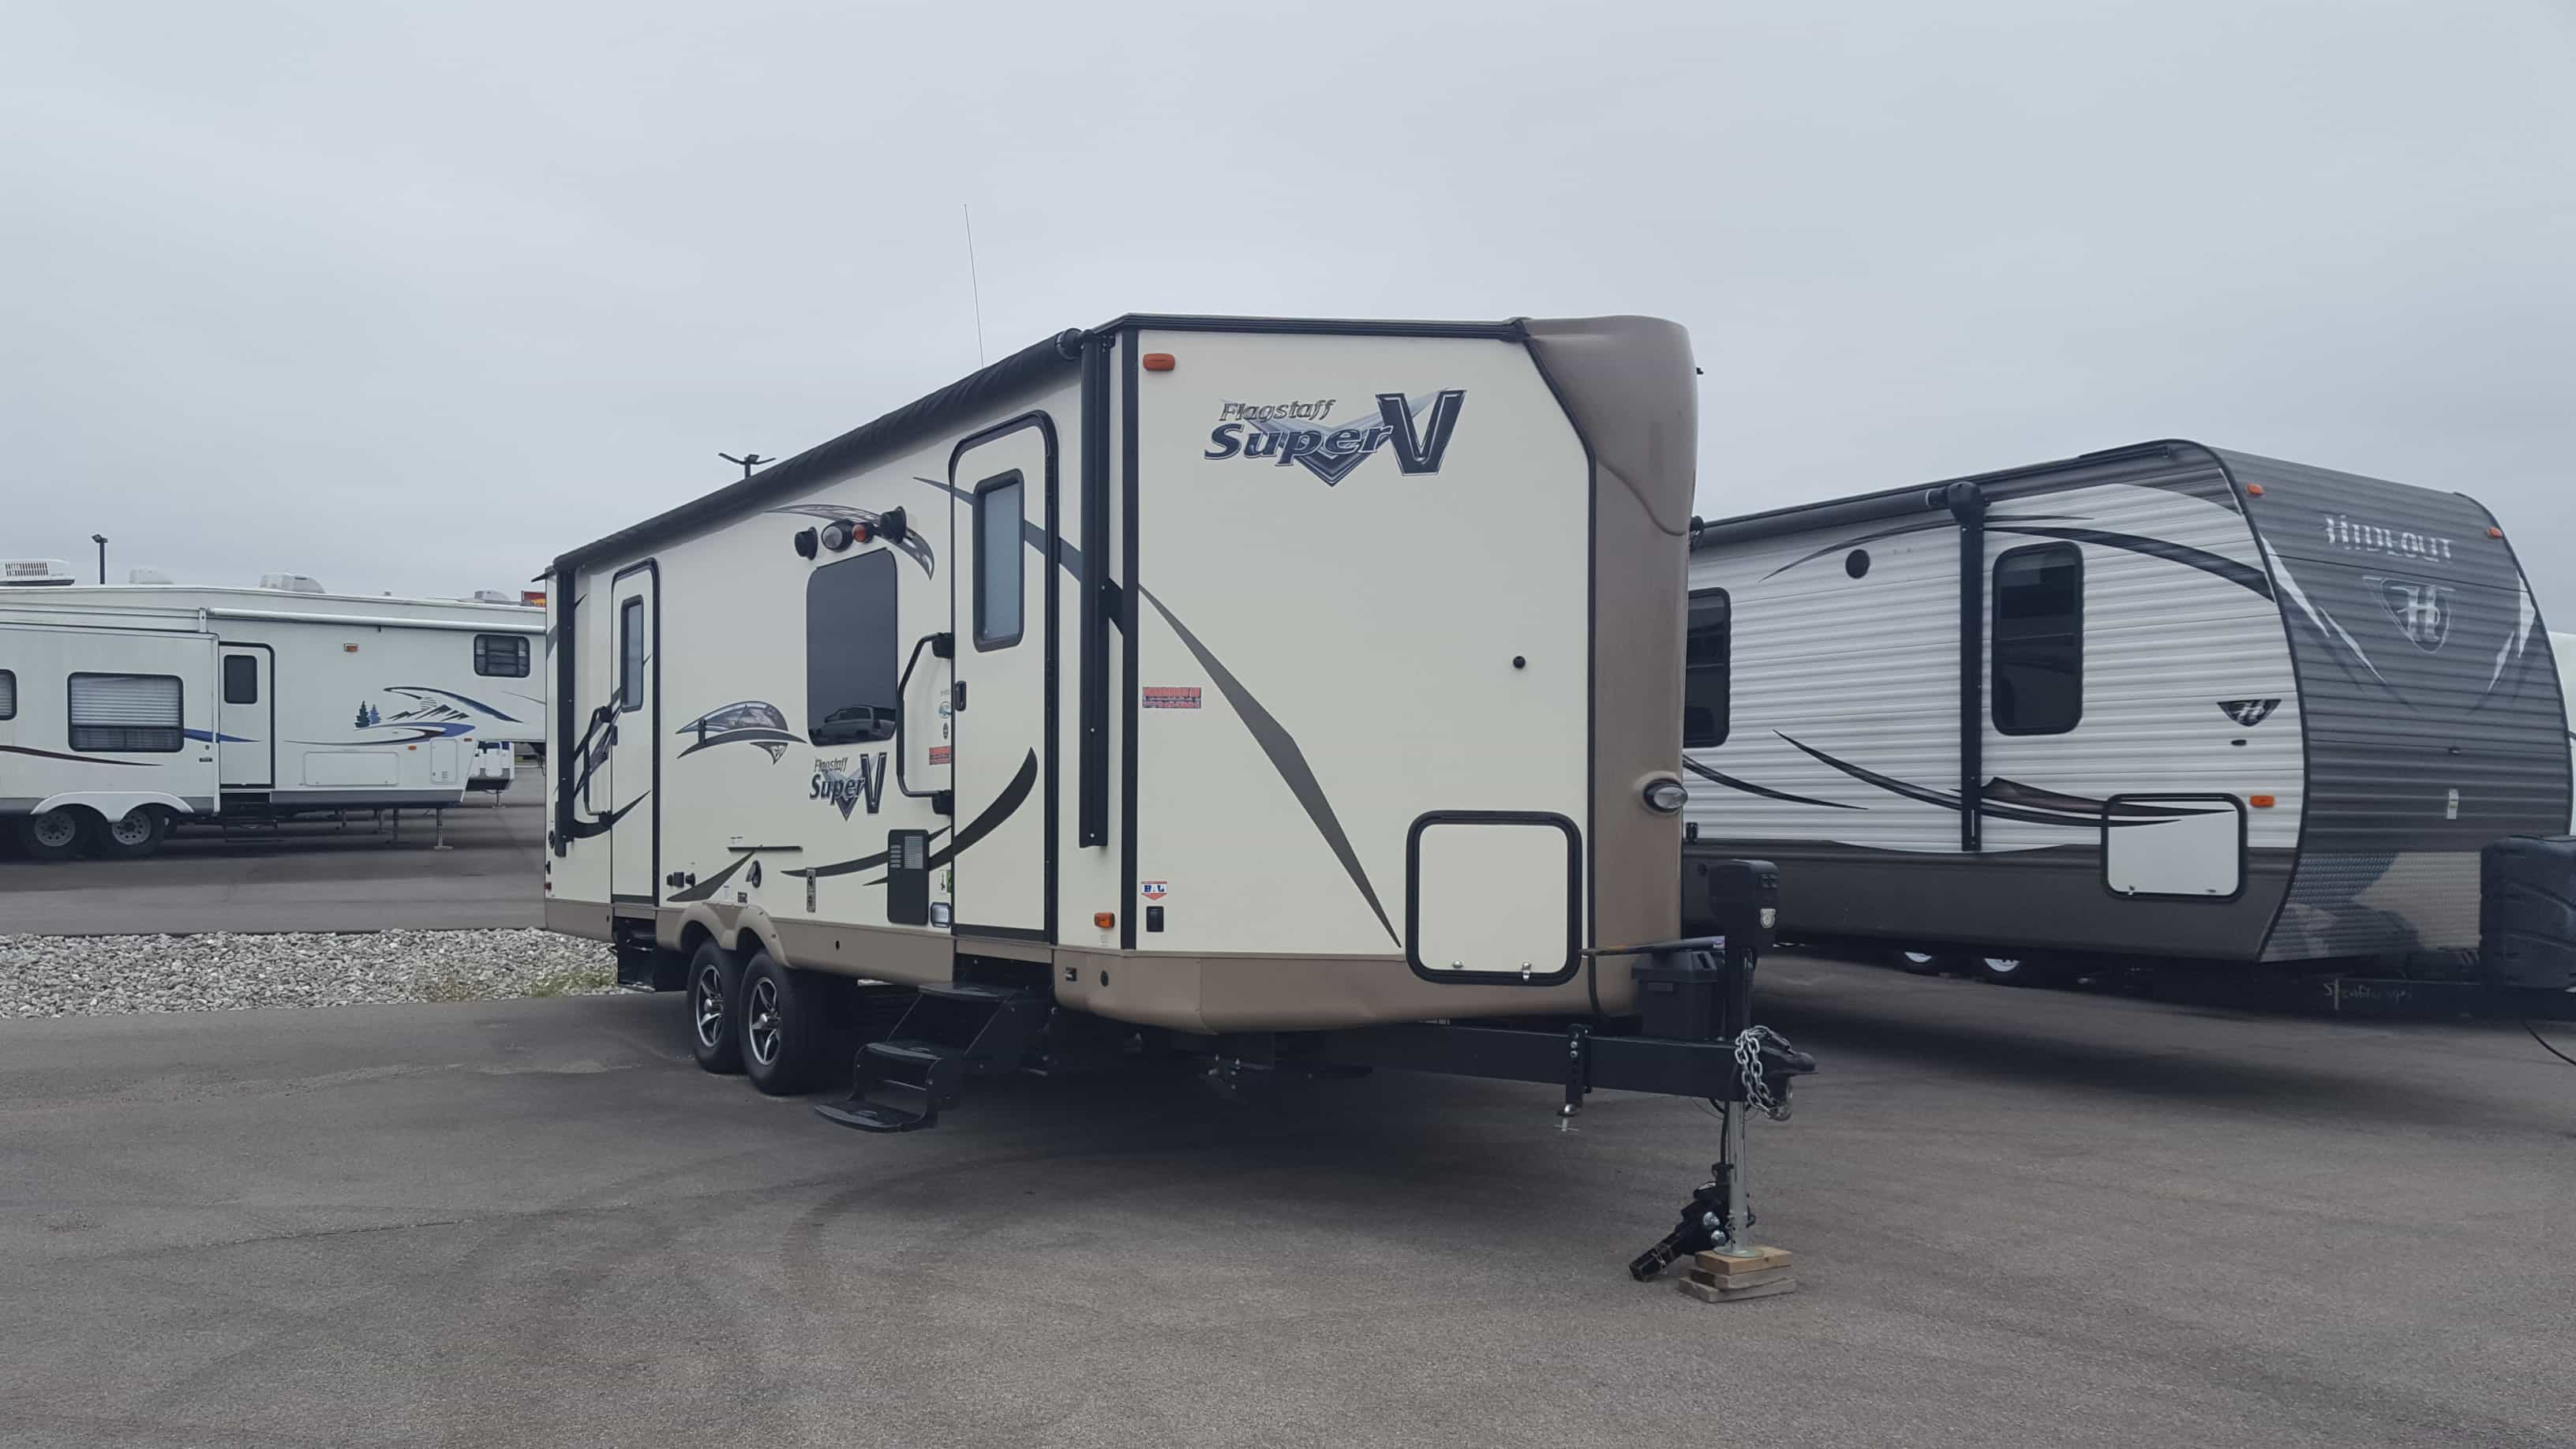 USED 2016 Forest River FLAGSTAFF 26VFKSS - American RV